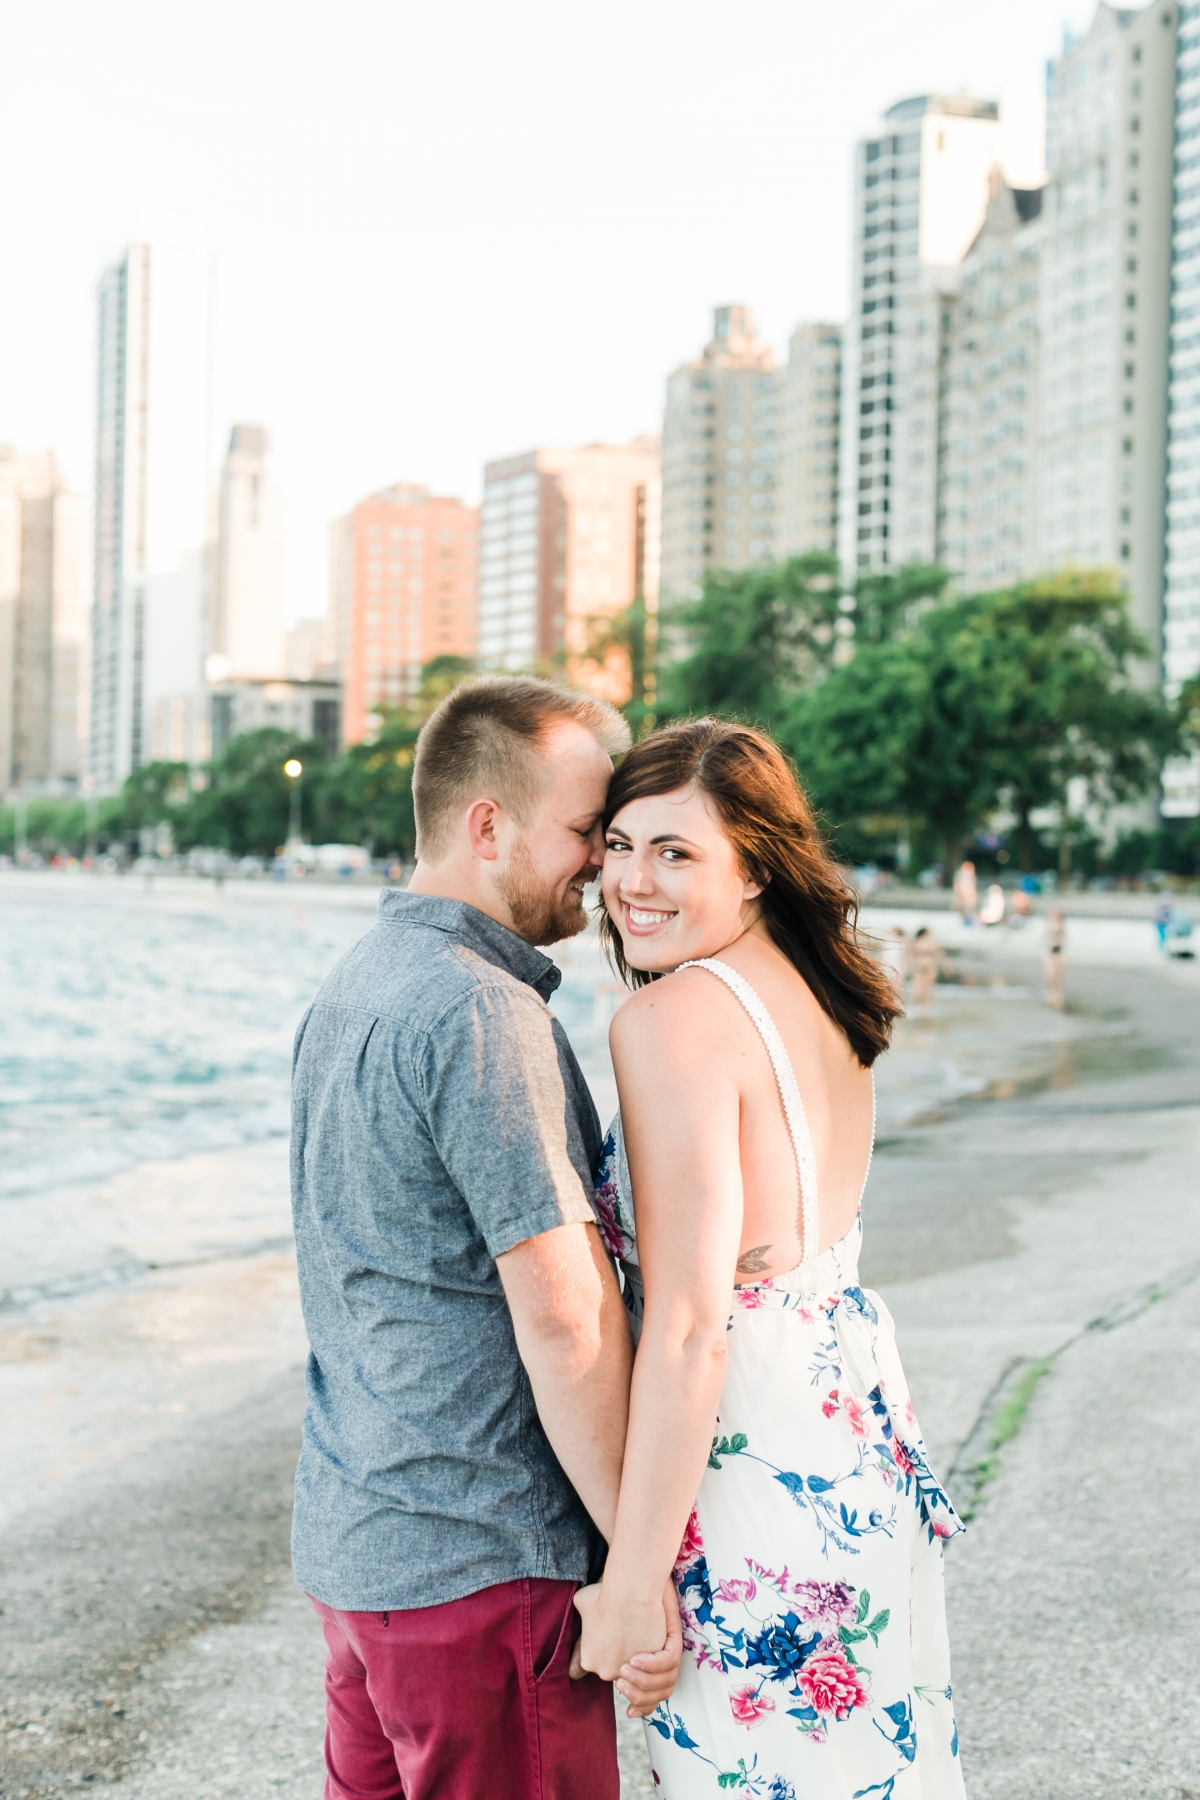 Lakefront Trail Chicago Engagement Session Janet D Photography 8